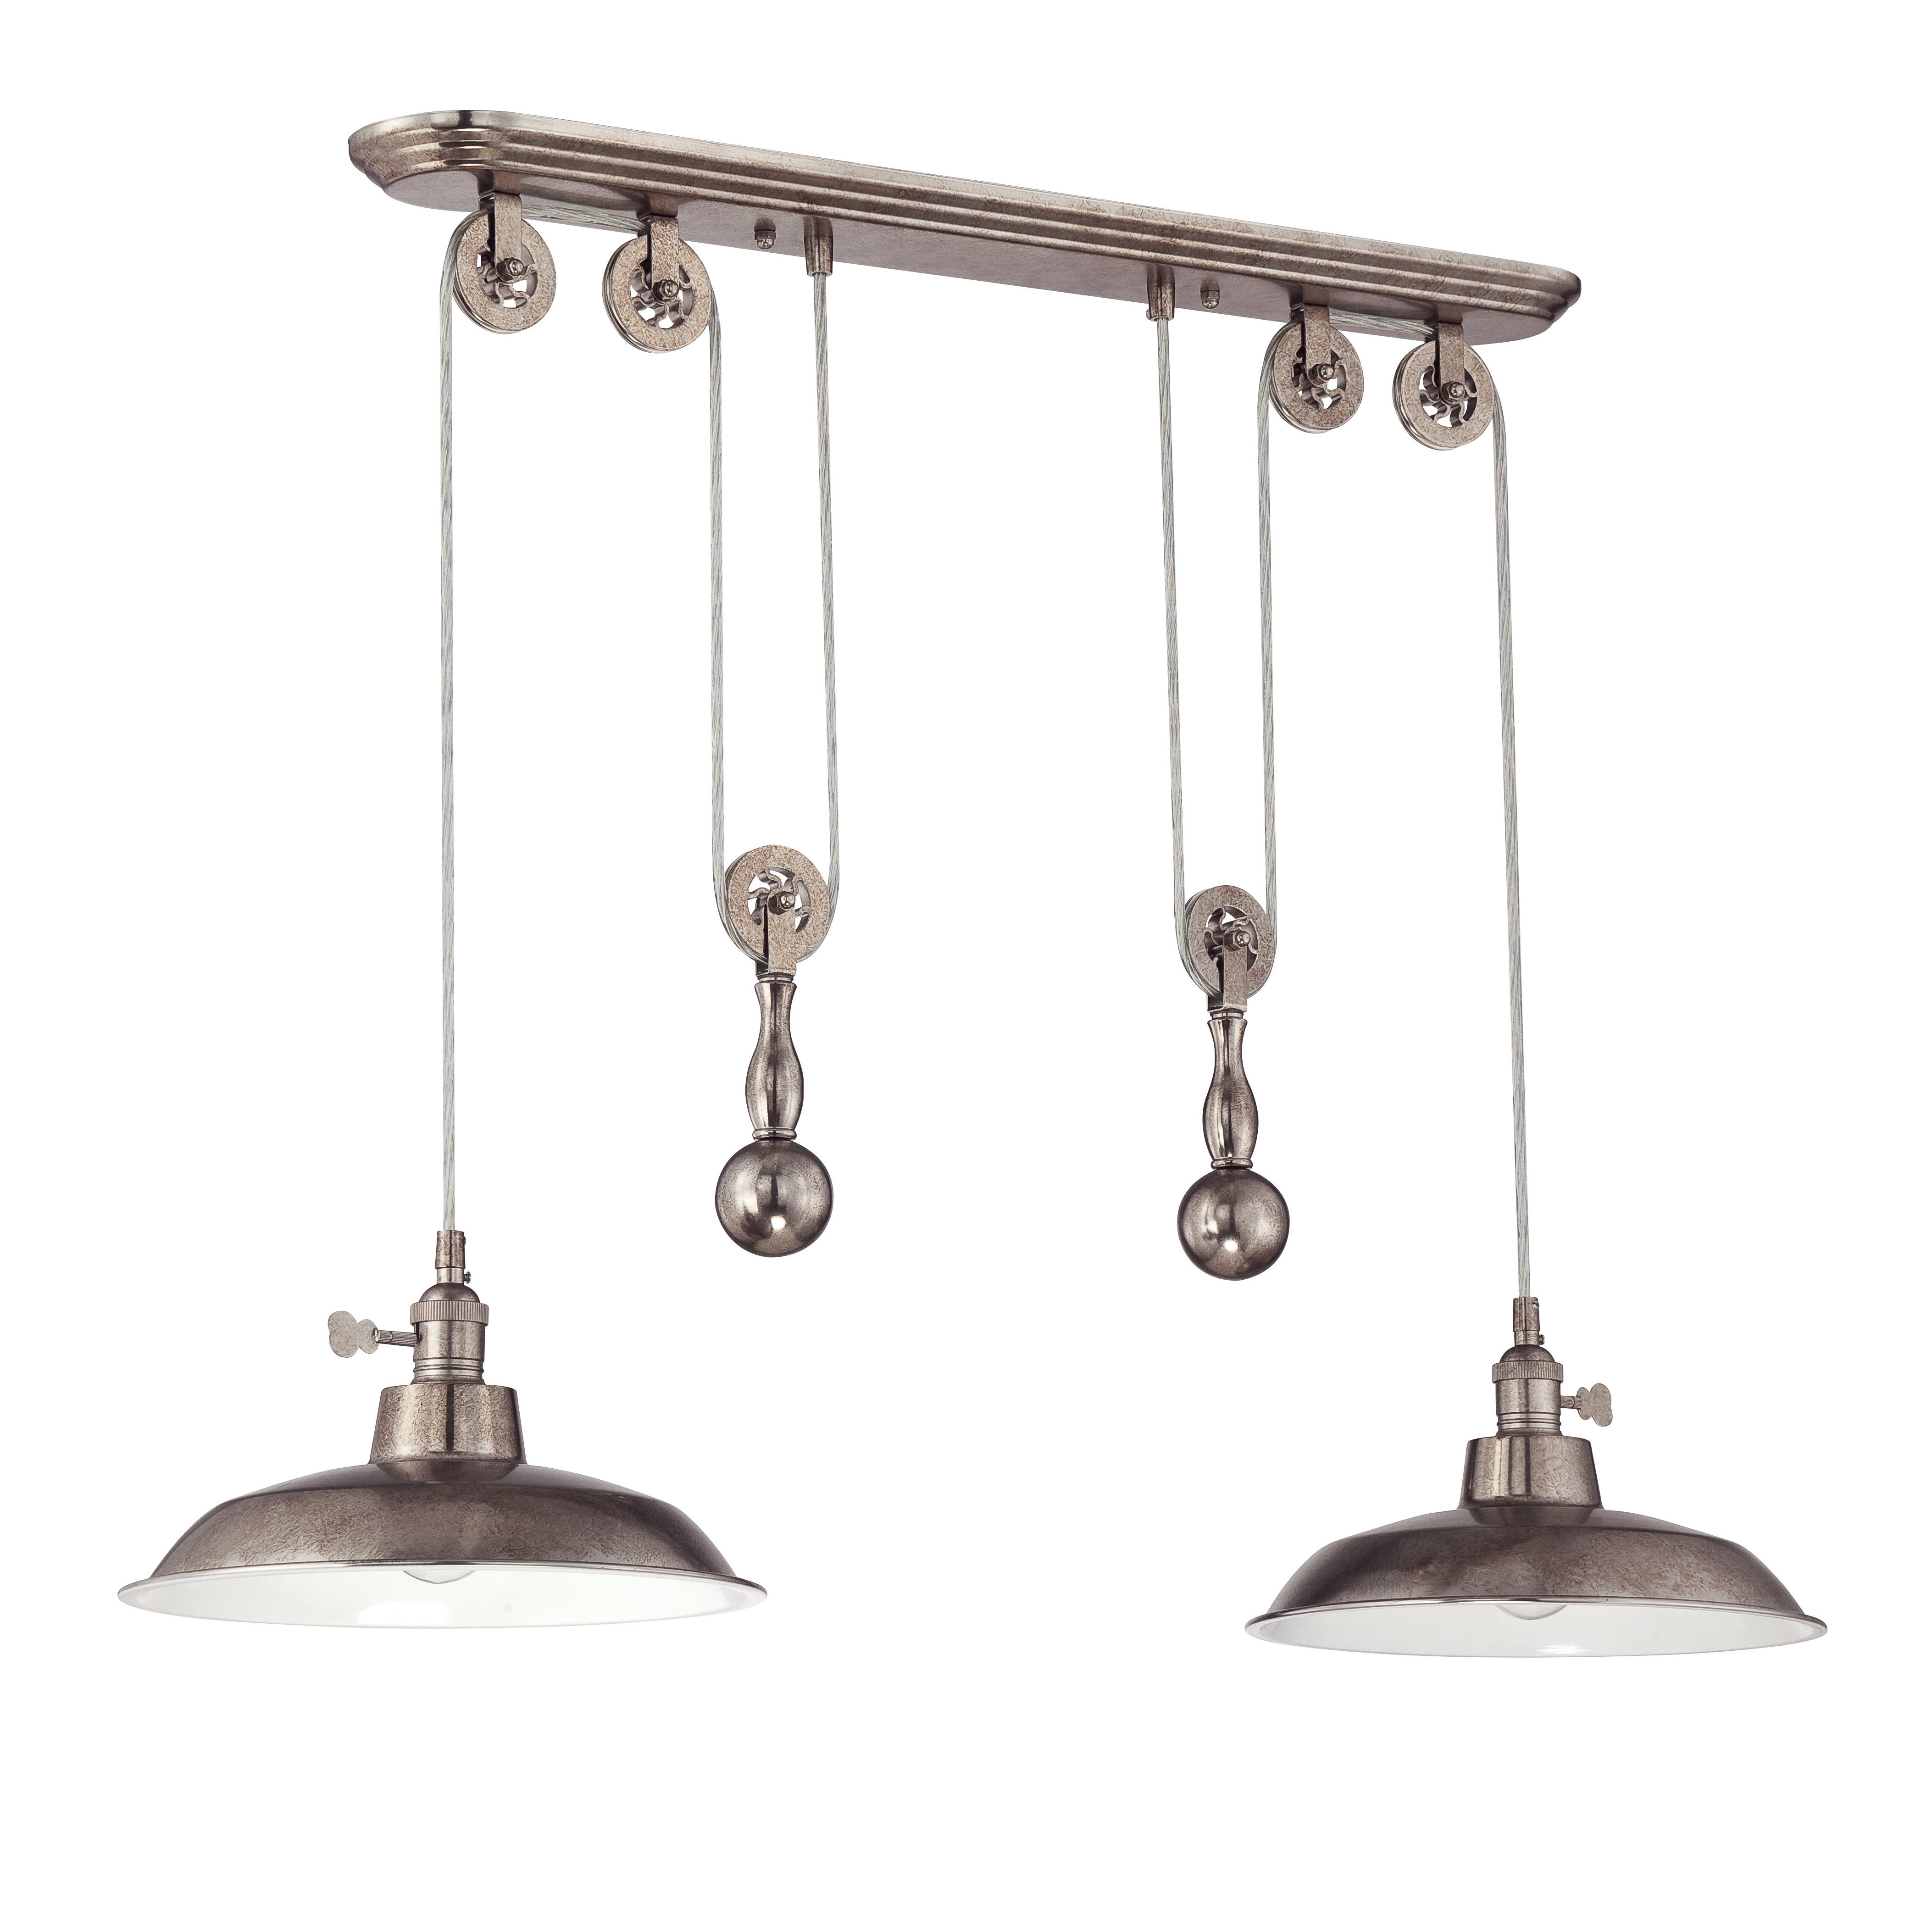 Ariel 2 Light Kitchen Island Dome Pendant With Regard To Ariel 2 Light Kitchen Island Dome Pendants (Image 10 of 30)